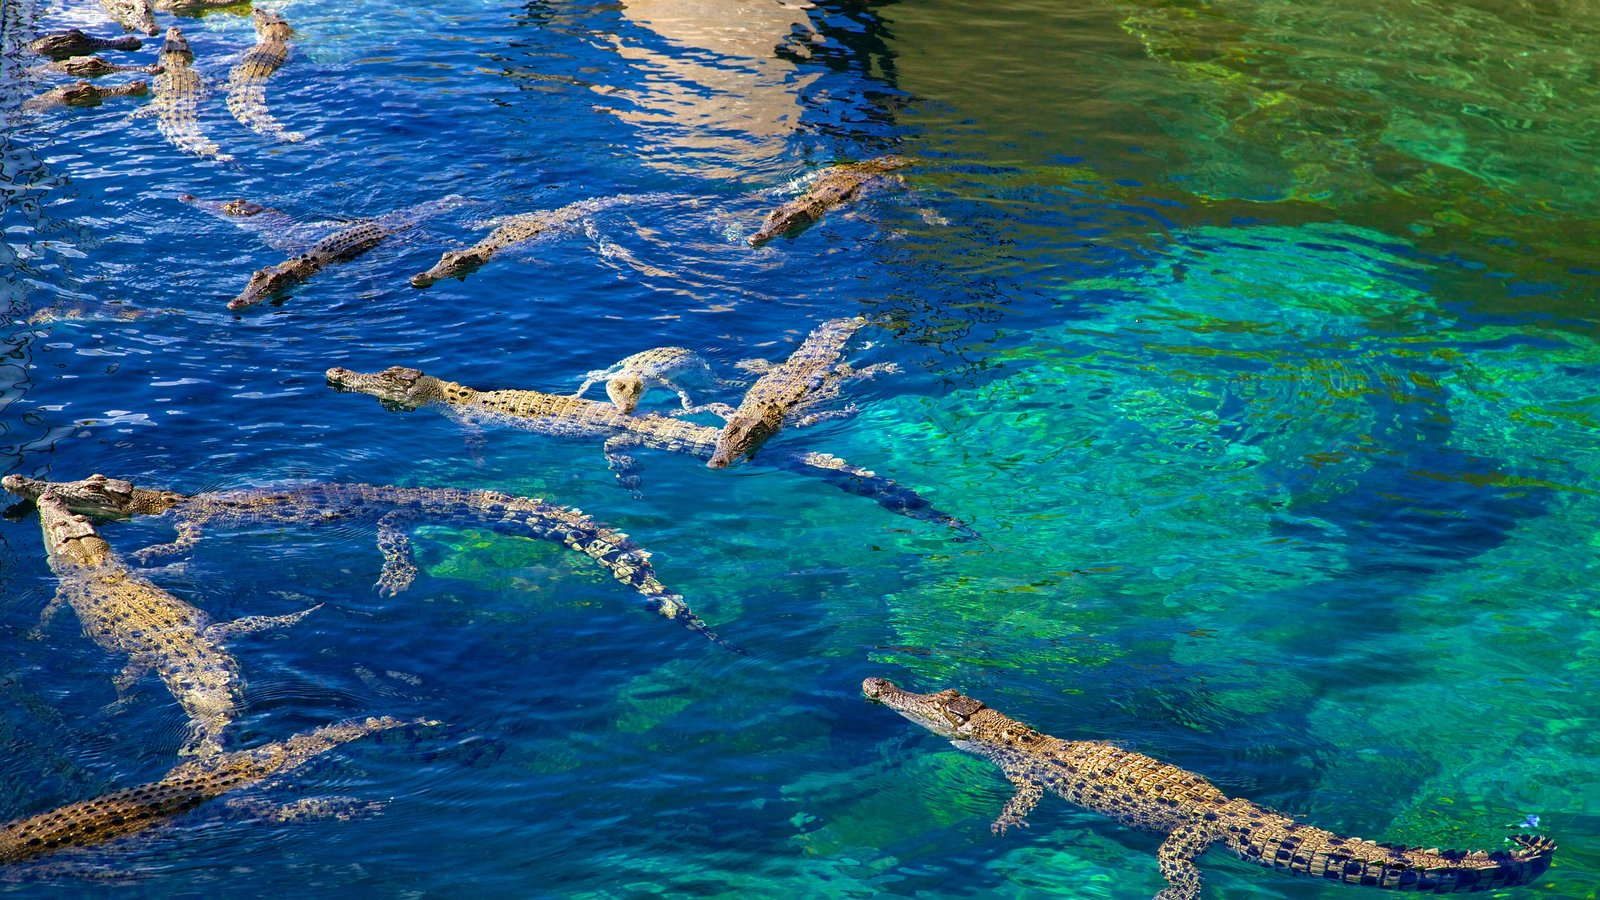 Crocosaurus Cove which includes dangerous animals and marine life